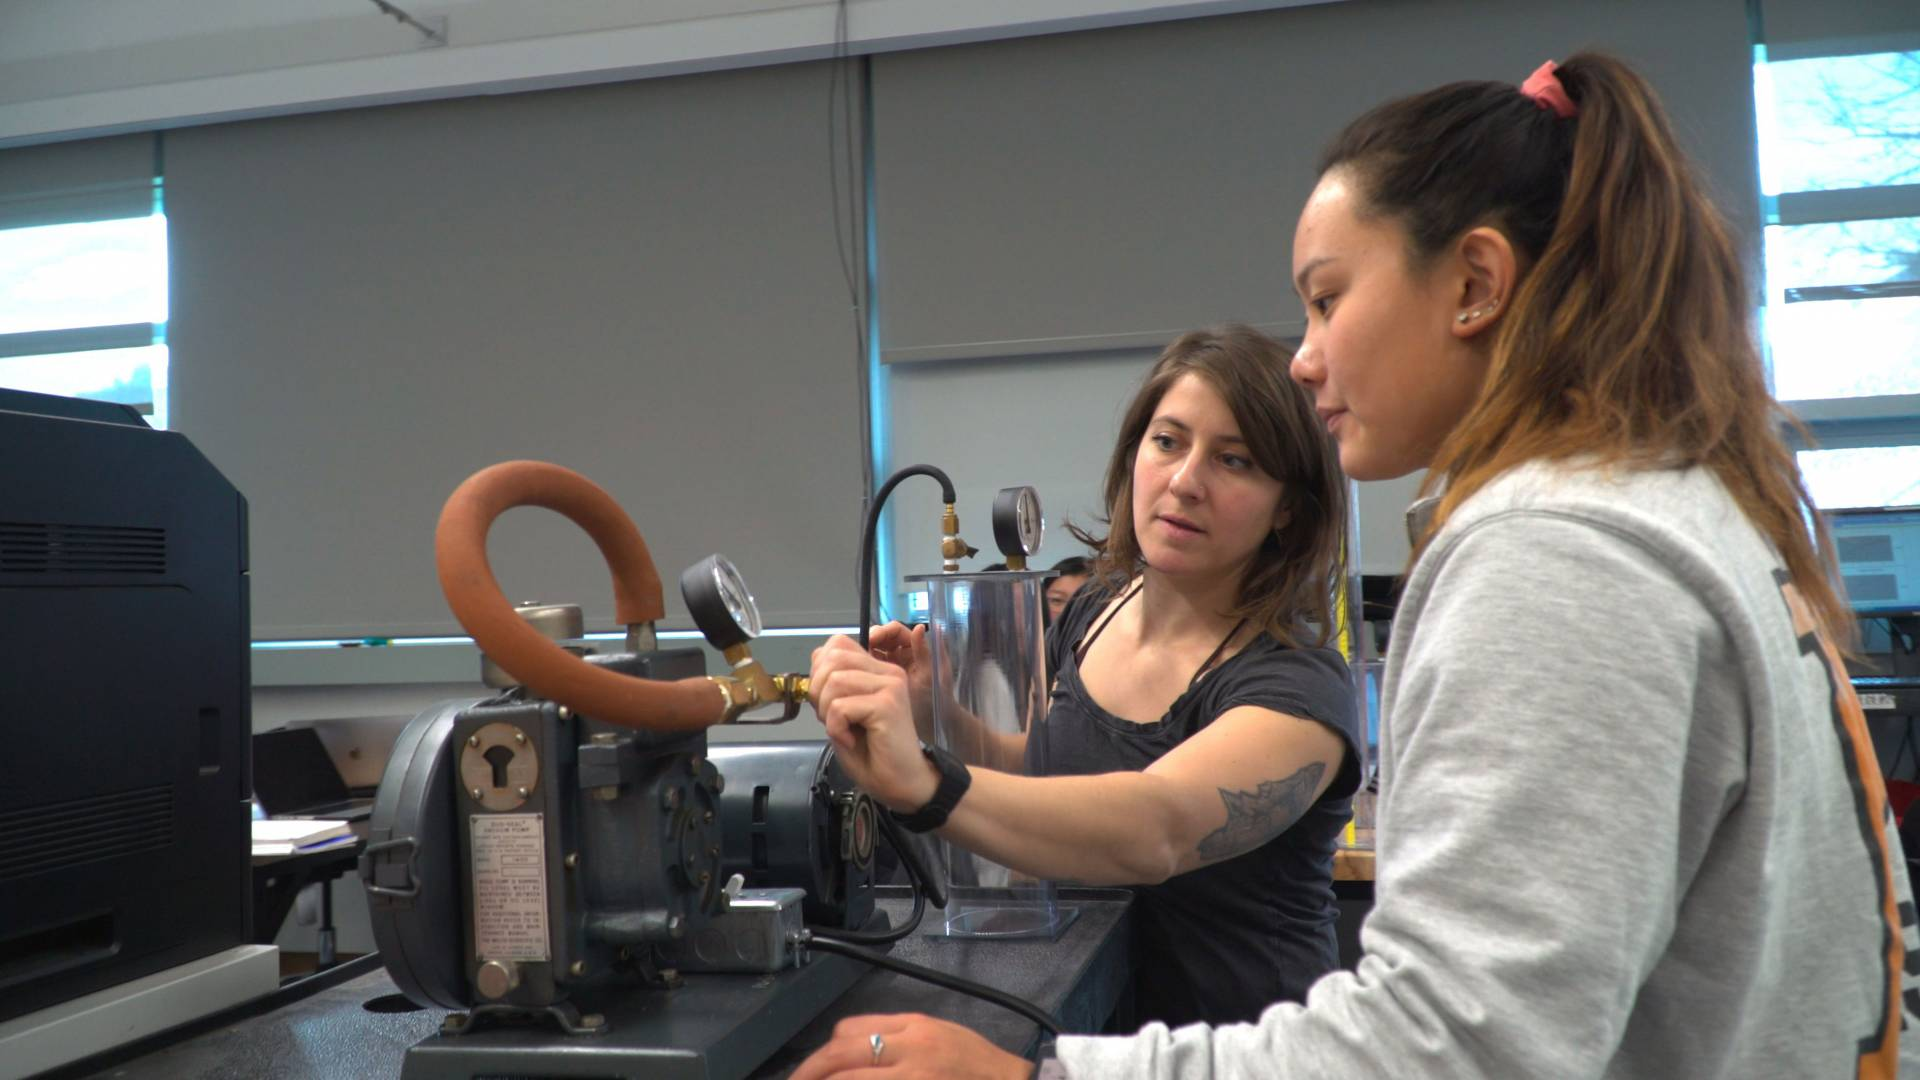 Instructor working with student in physics lab